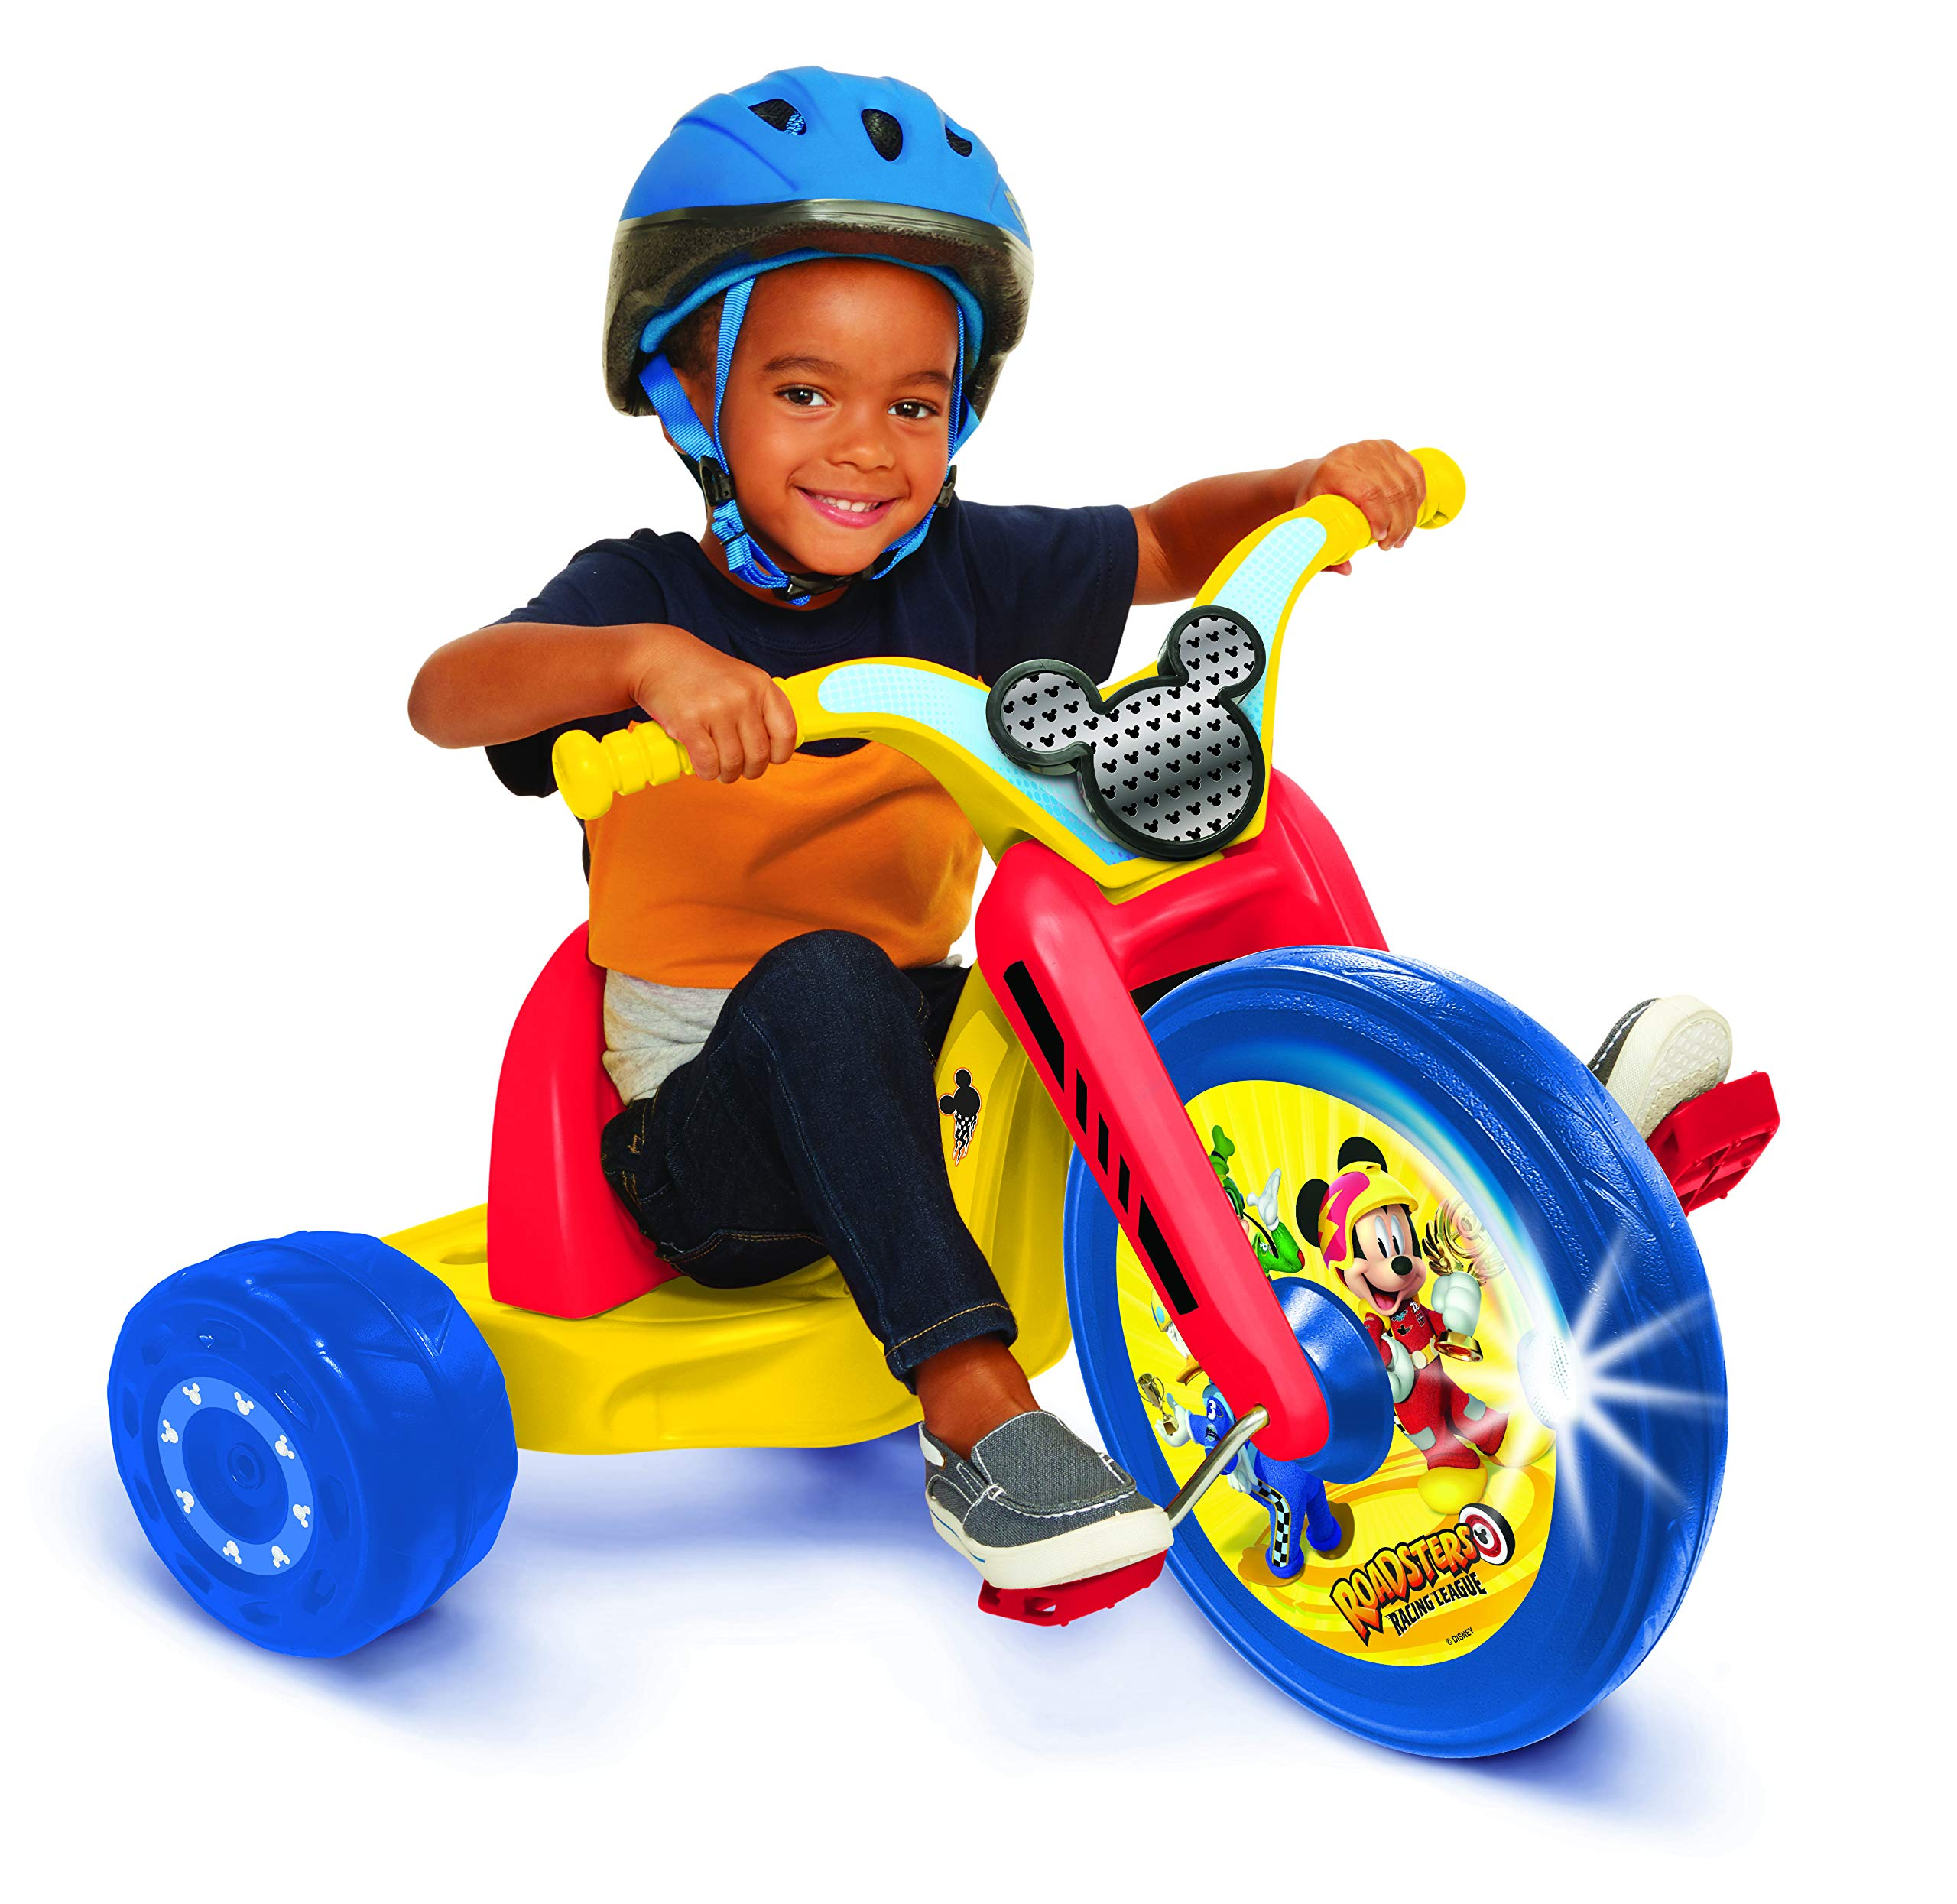 Mickey and the Roadster Racers 15'' Fly Wheel Junior Cruiser Ride-on, Ages 3-7, Yellow/Red/Blue, 20'' W x 22.5'' H x 32.83'' L